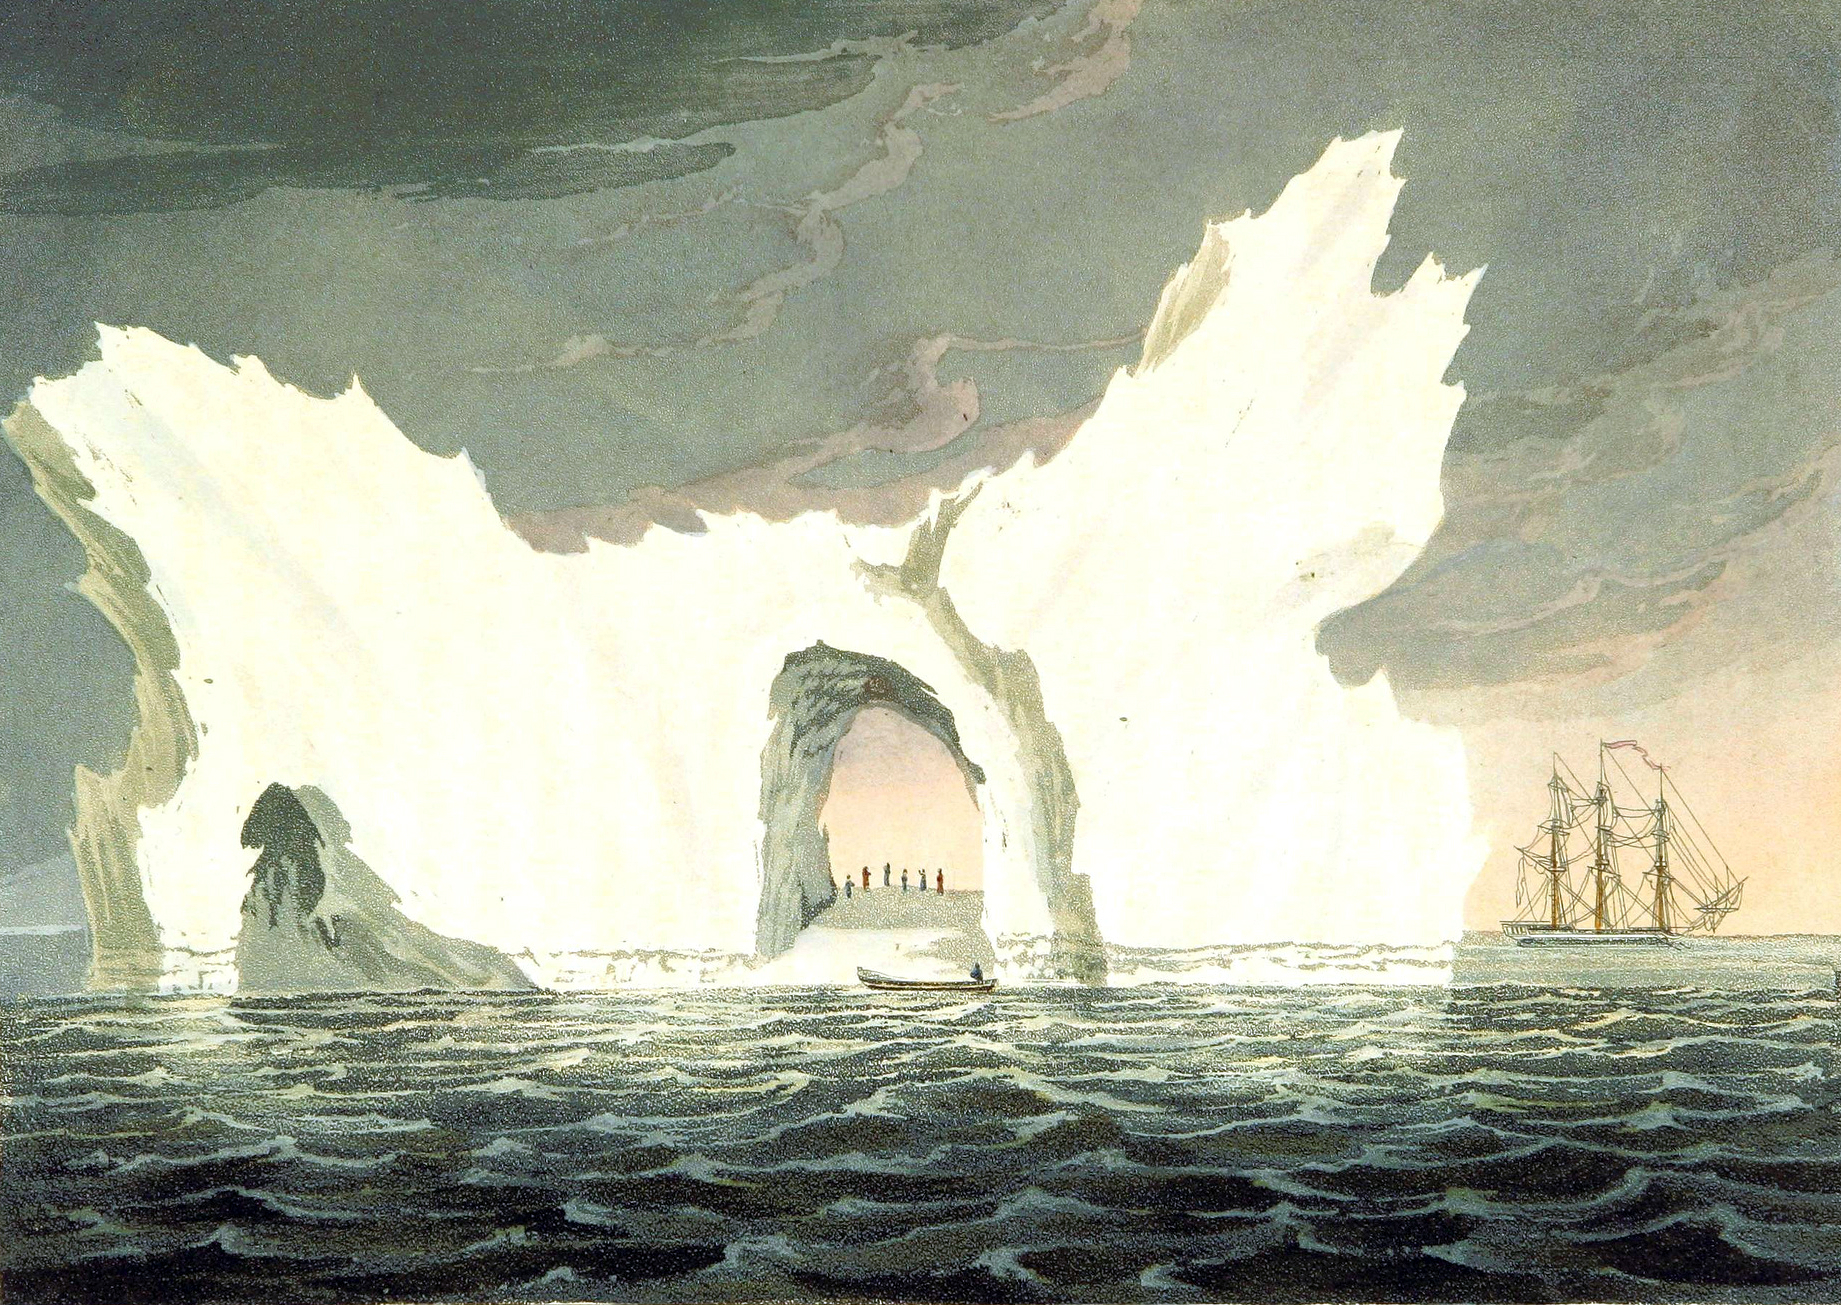 19th century iceberg illustrations in the public domain